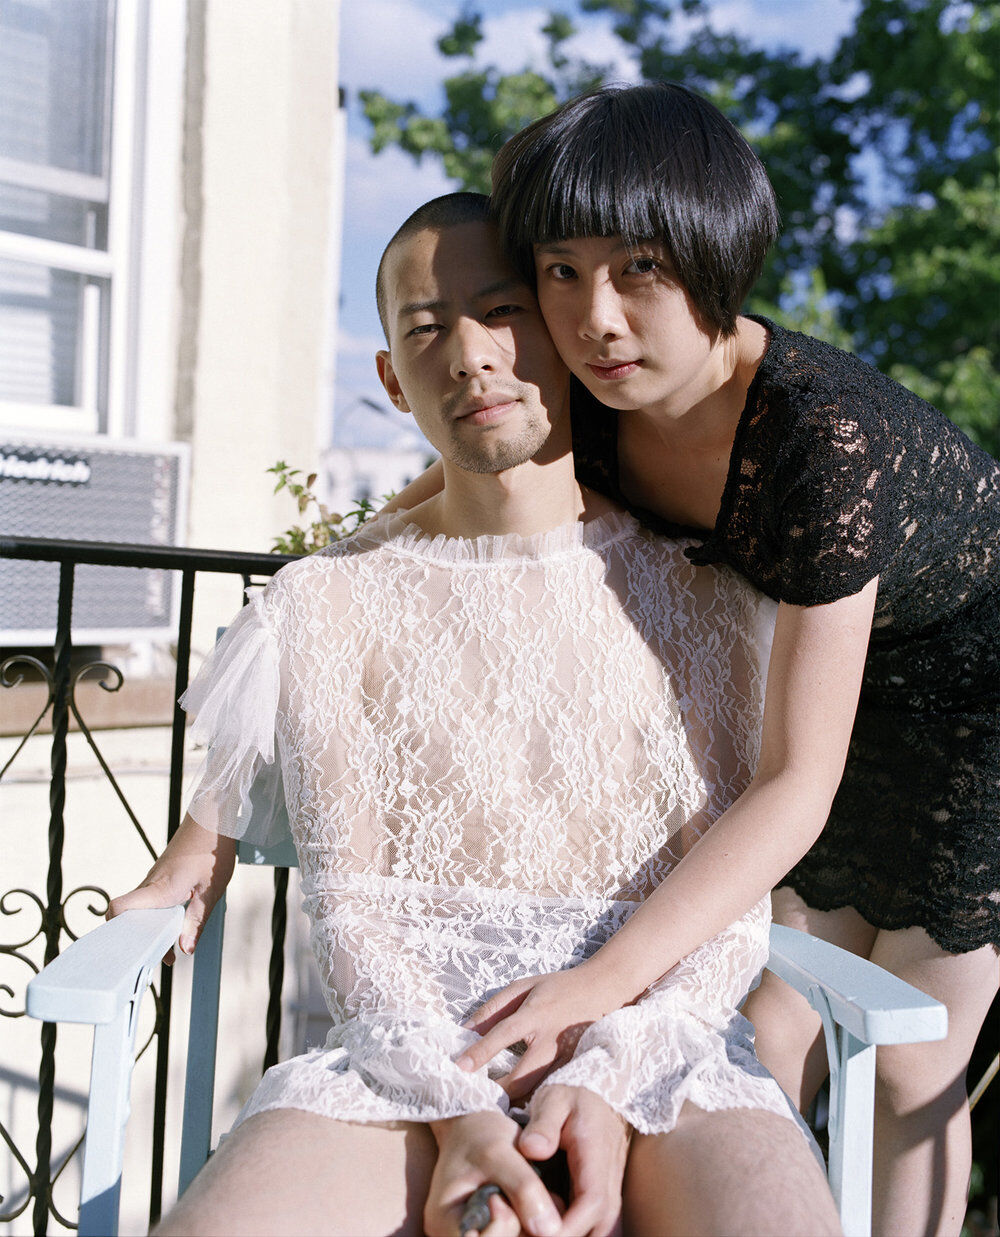 """Pixy Liao, Lace Sisters, from the series """"Experimental Relationship,"""" 2010. Courtesy of the artist."""